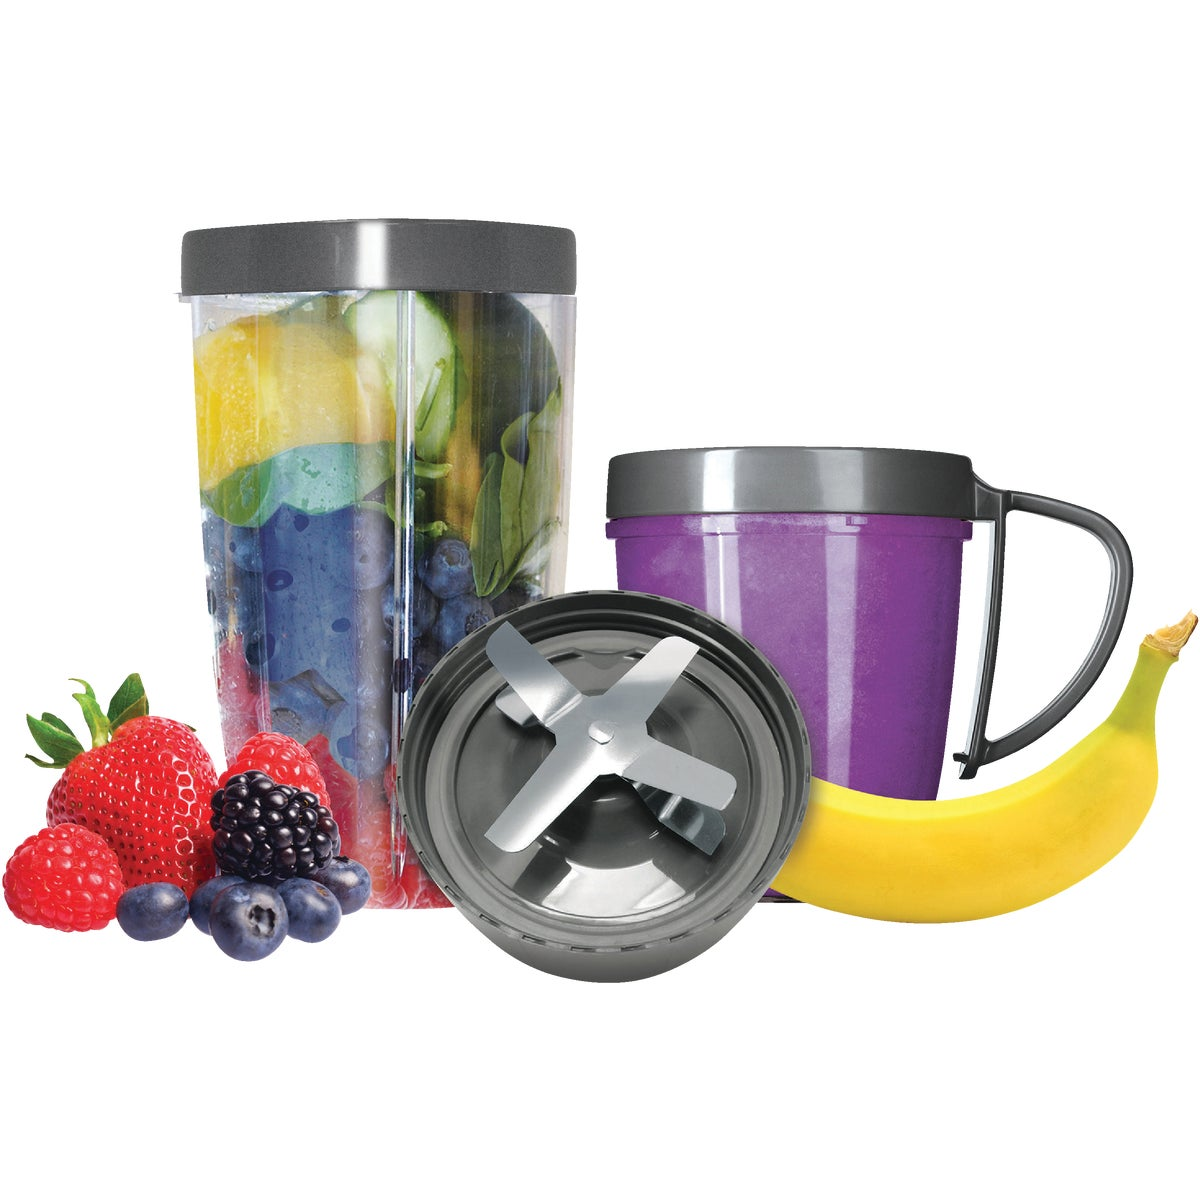 NUTRI BULLET UPGRADE KIT